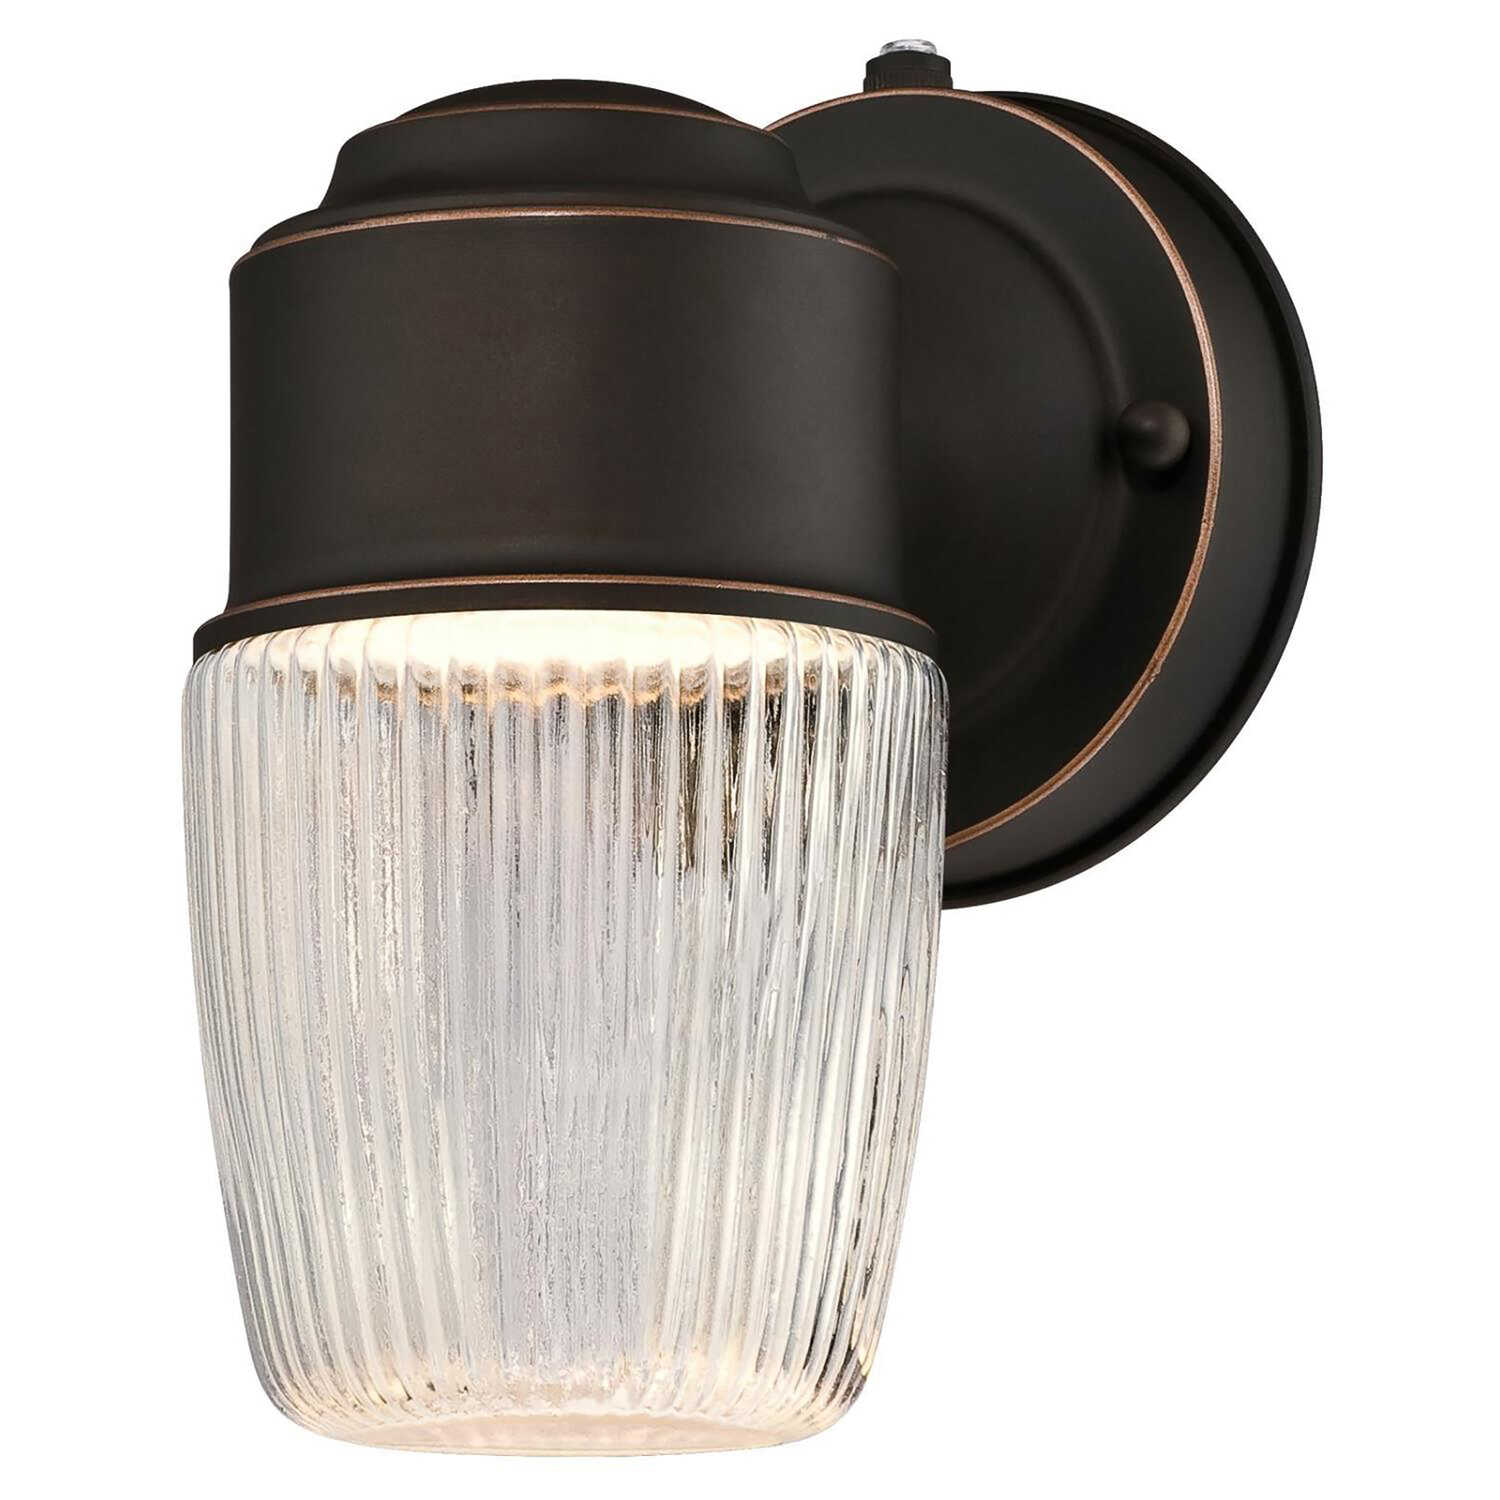 Westinghouse  Oil Rubbed Bronze  Dusk to Dawn  LED  Lantern Fixture